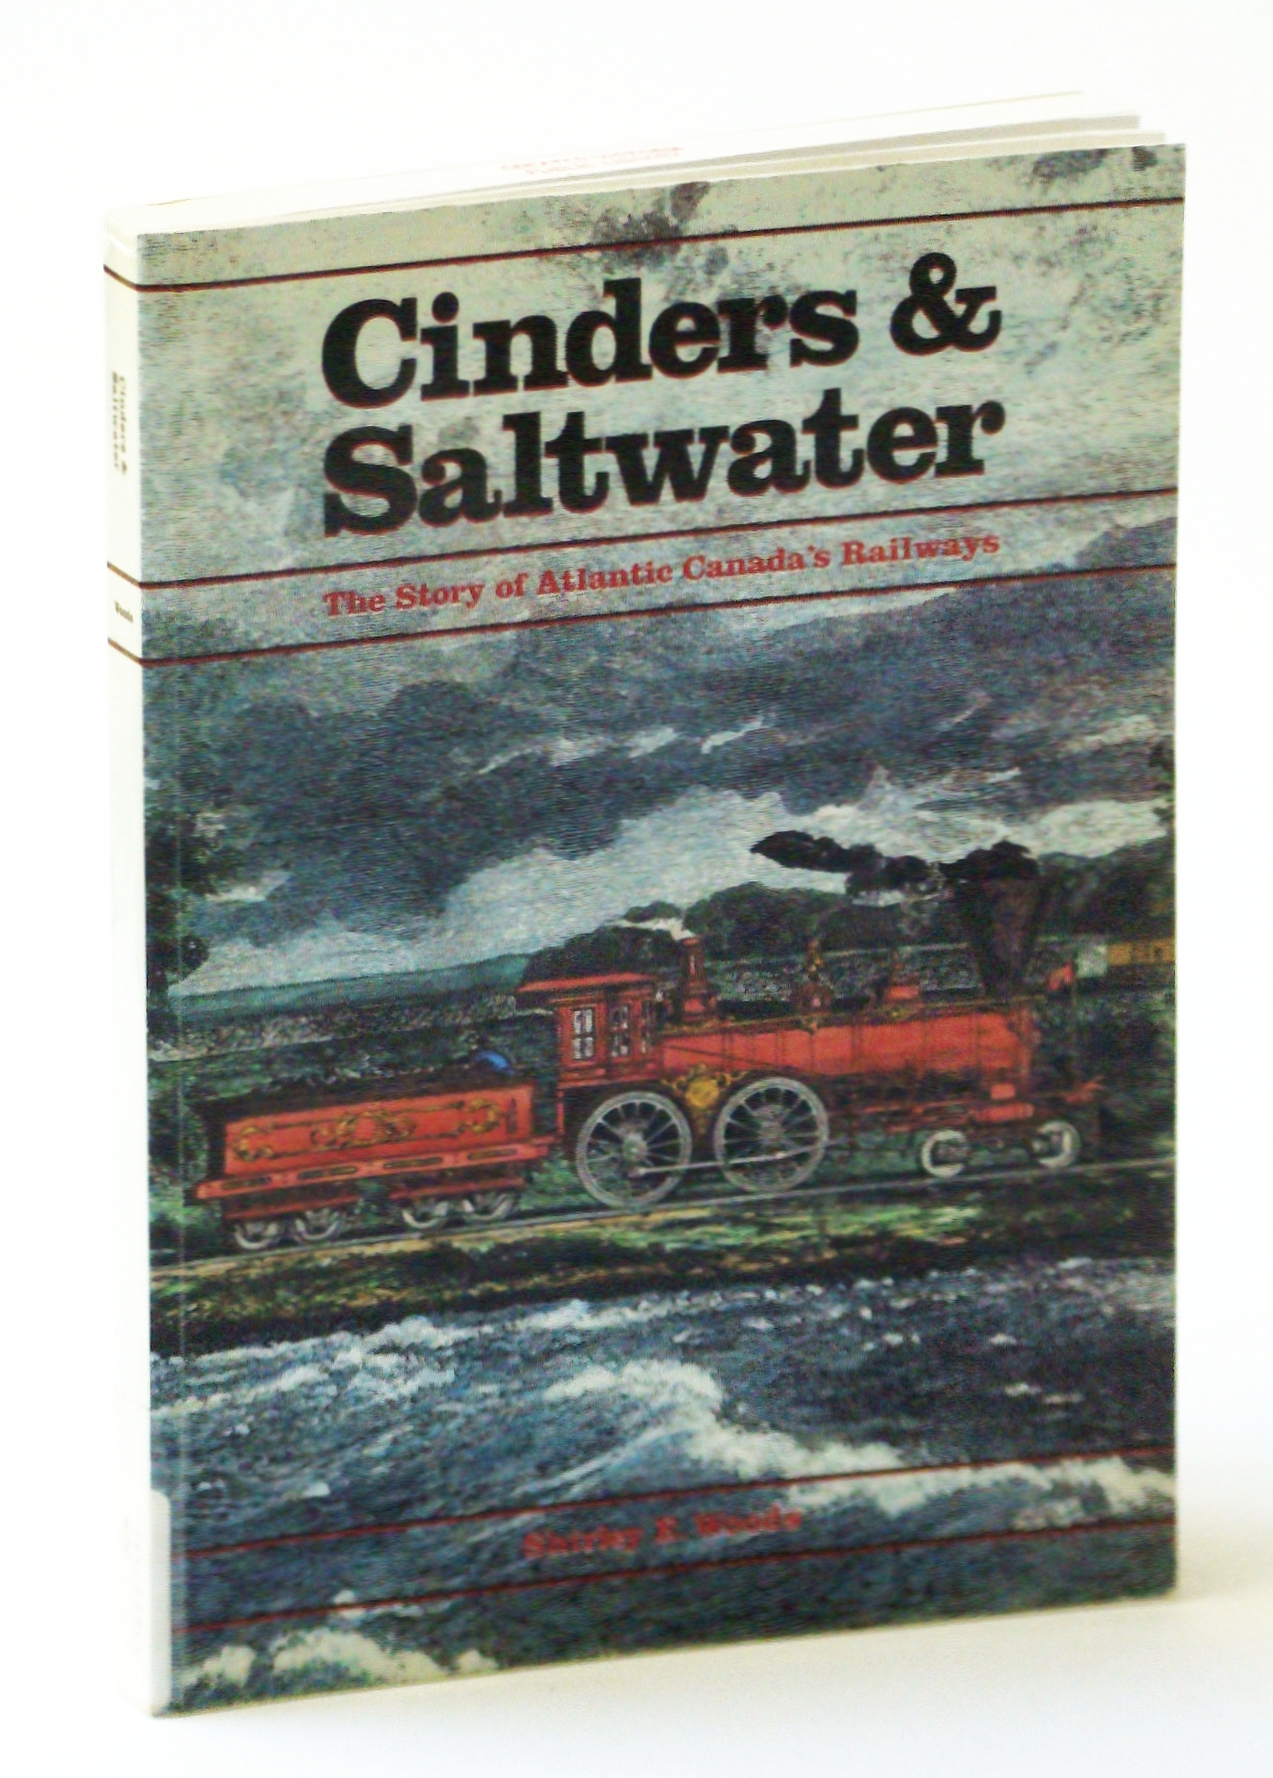 Image for Cinders & saltwater: The story of Atlantic Canada's railways